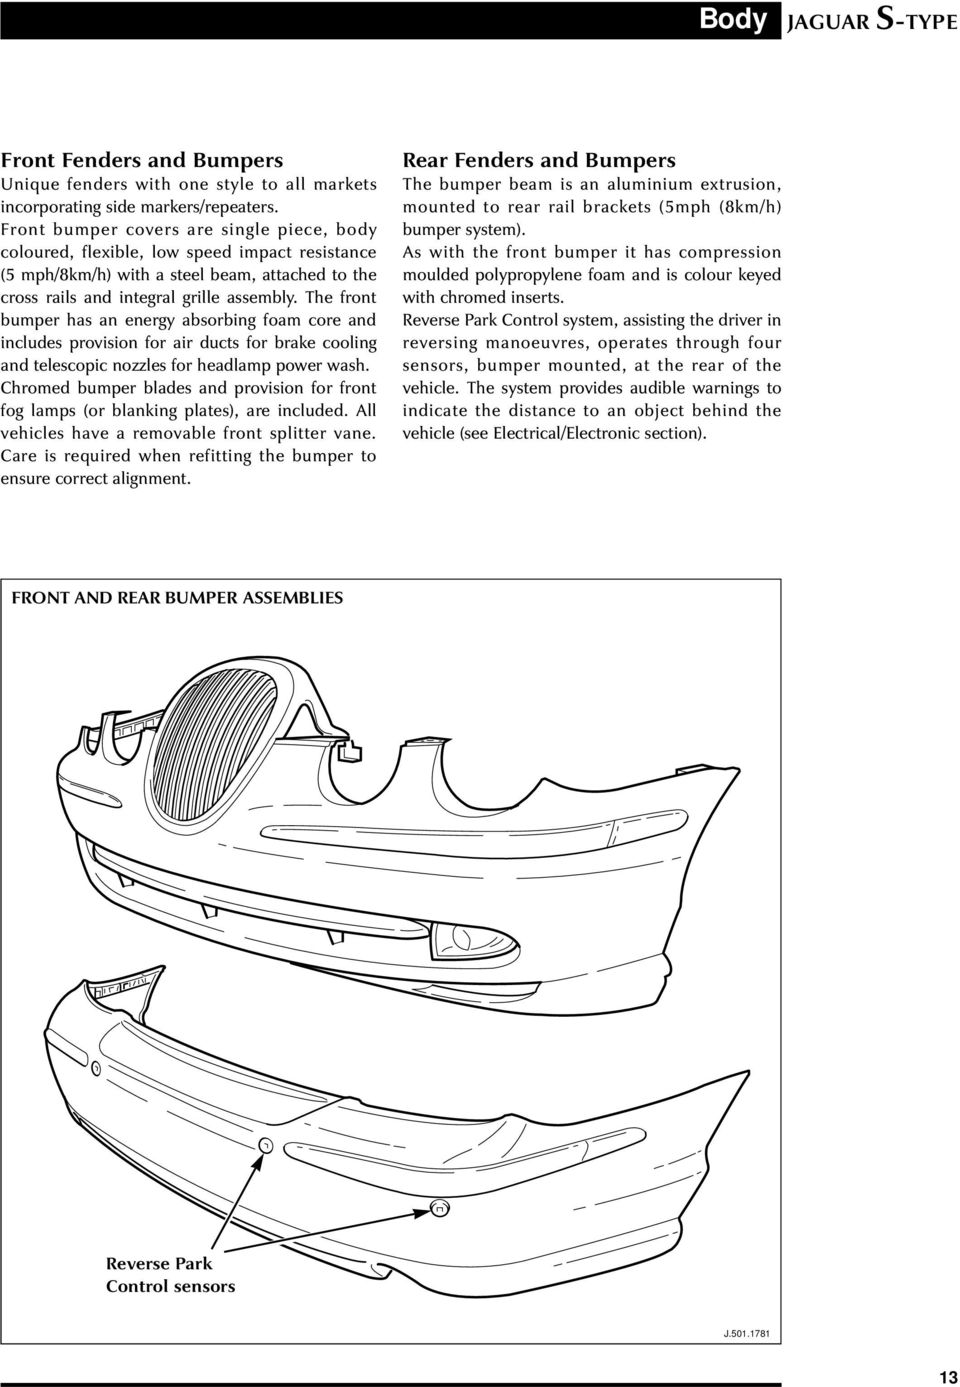 Jaguar S Type Sports Sedan Introduction Pdf 2001 Trunk Fuse Box The Front Bumper Has An Energy Absorbing Foam Core And Includes Provision For Air Ducts 19 Body Hood Release